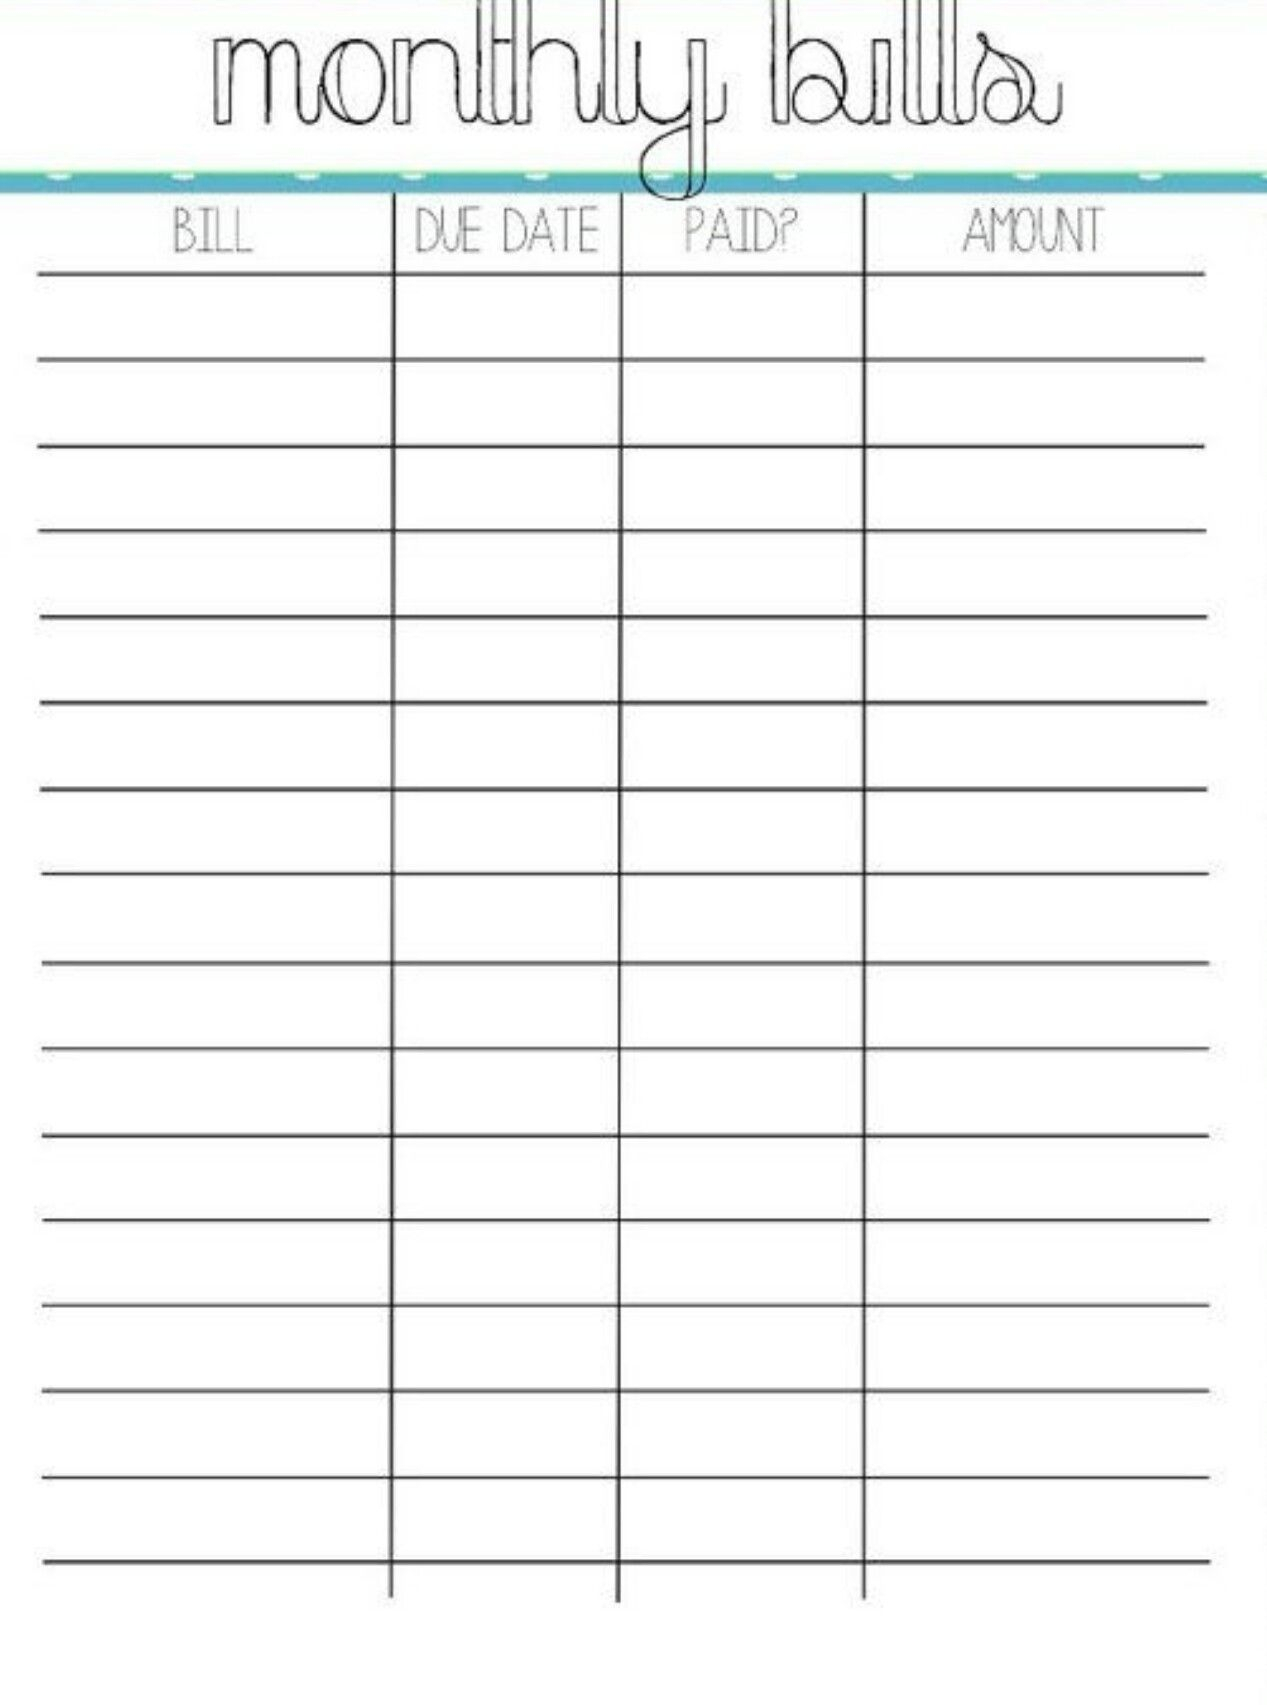 Pin By Crystal On Bills | Organizing Monthly Bills, Bills intended for Free Printable Monthly Bill Organizer Template